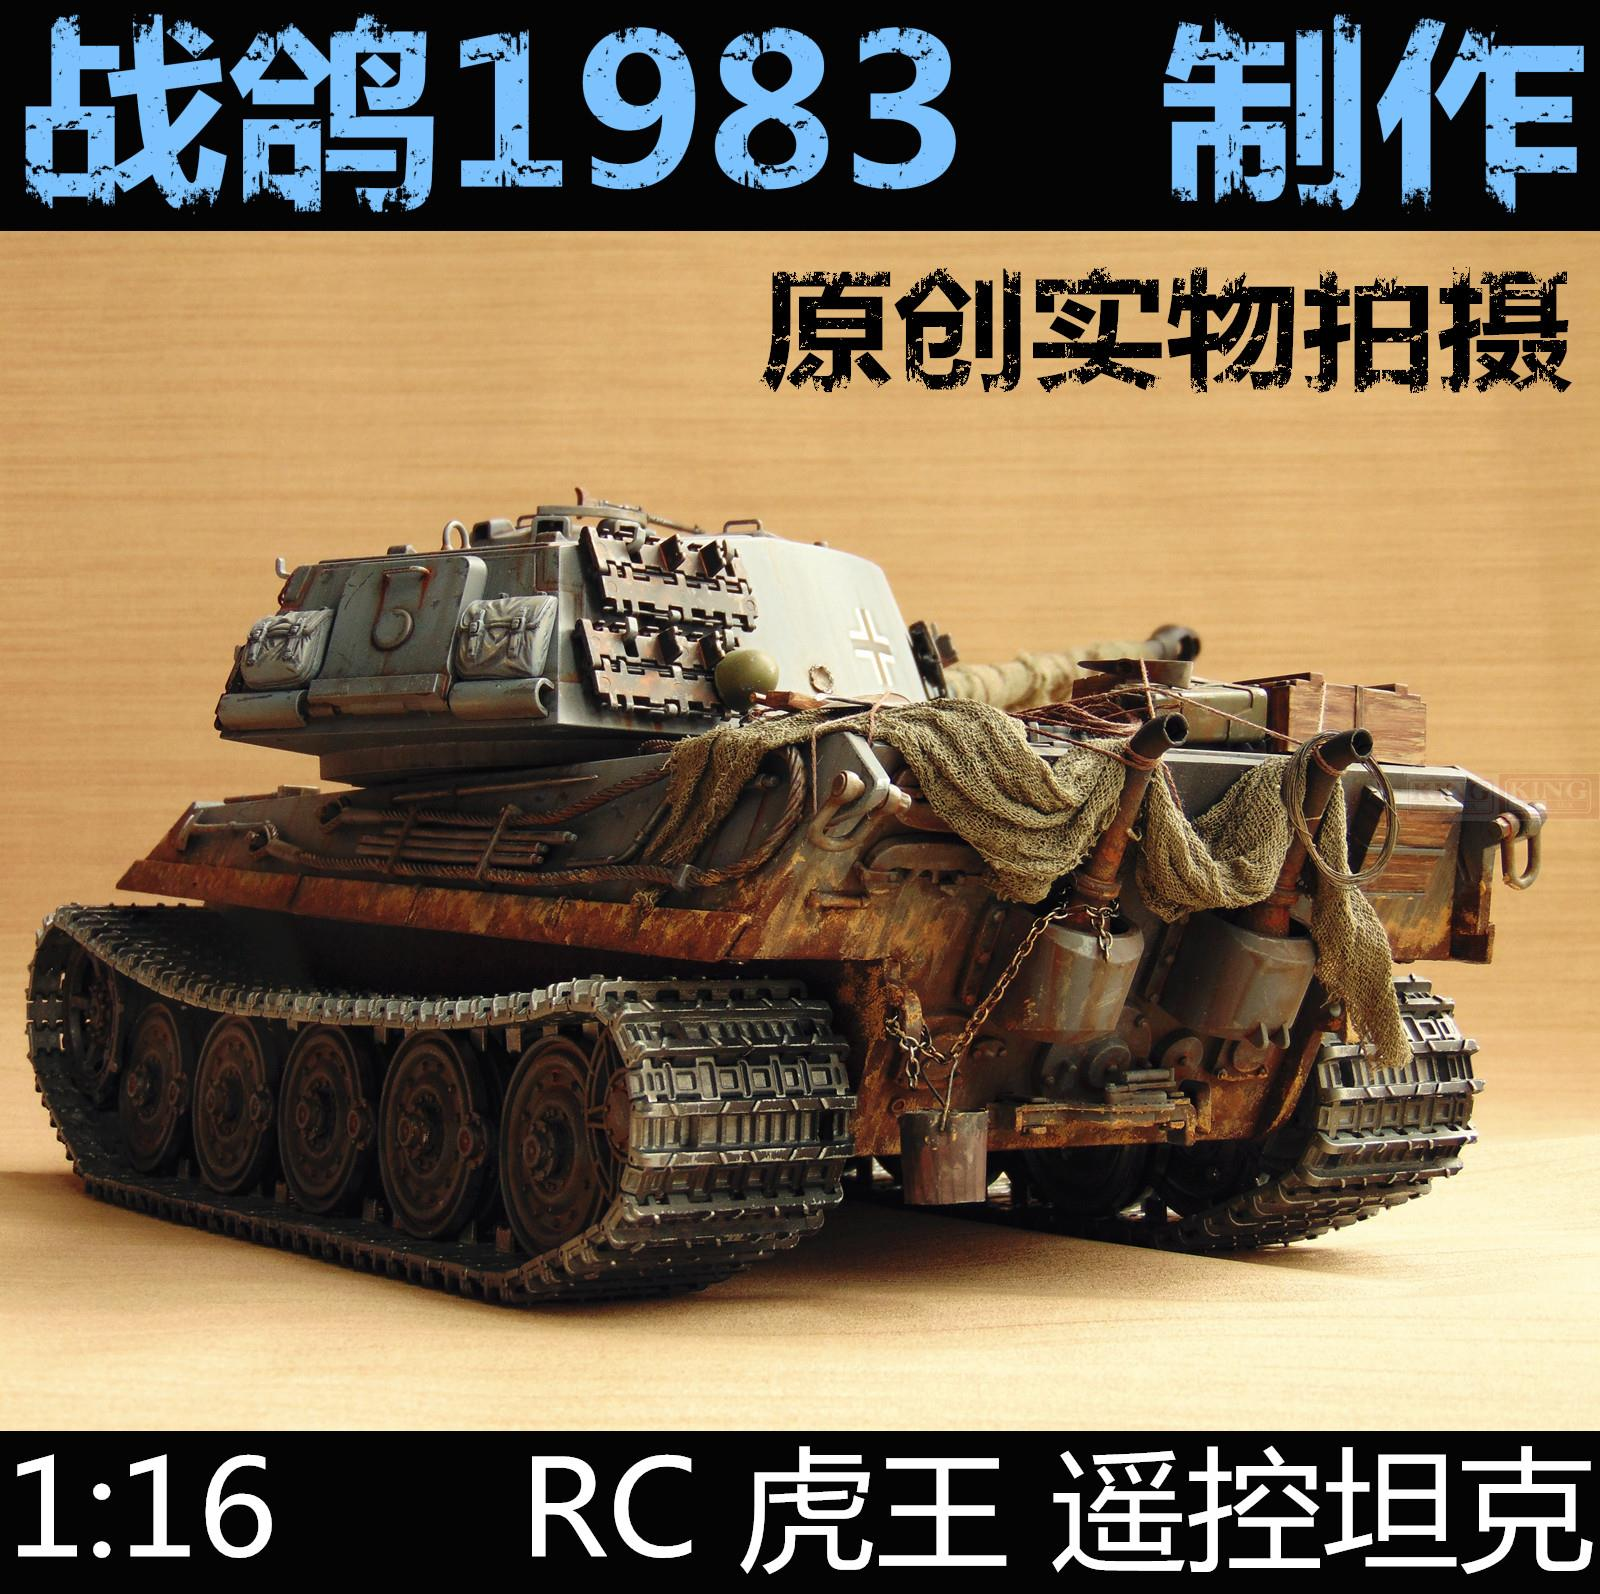 KNL HOBBY 1:16 RC King Tiger tank model remote control OEM heavy coating of paint to do the old upgrade HengLong